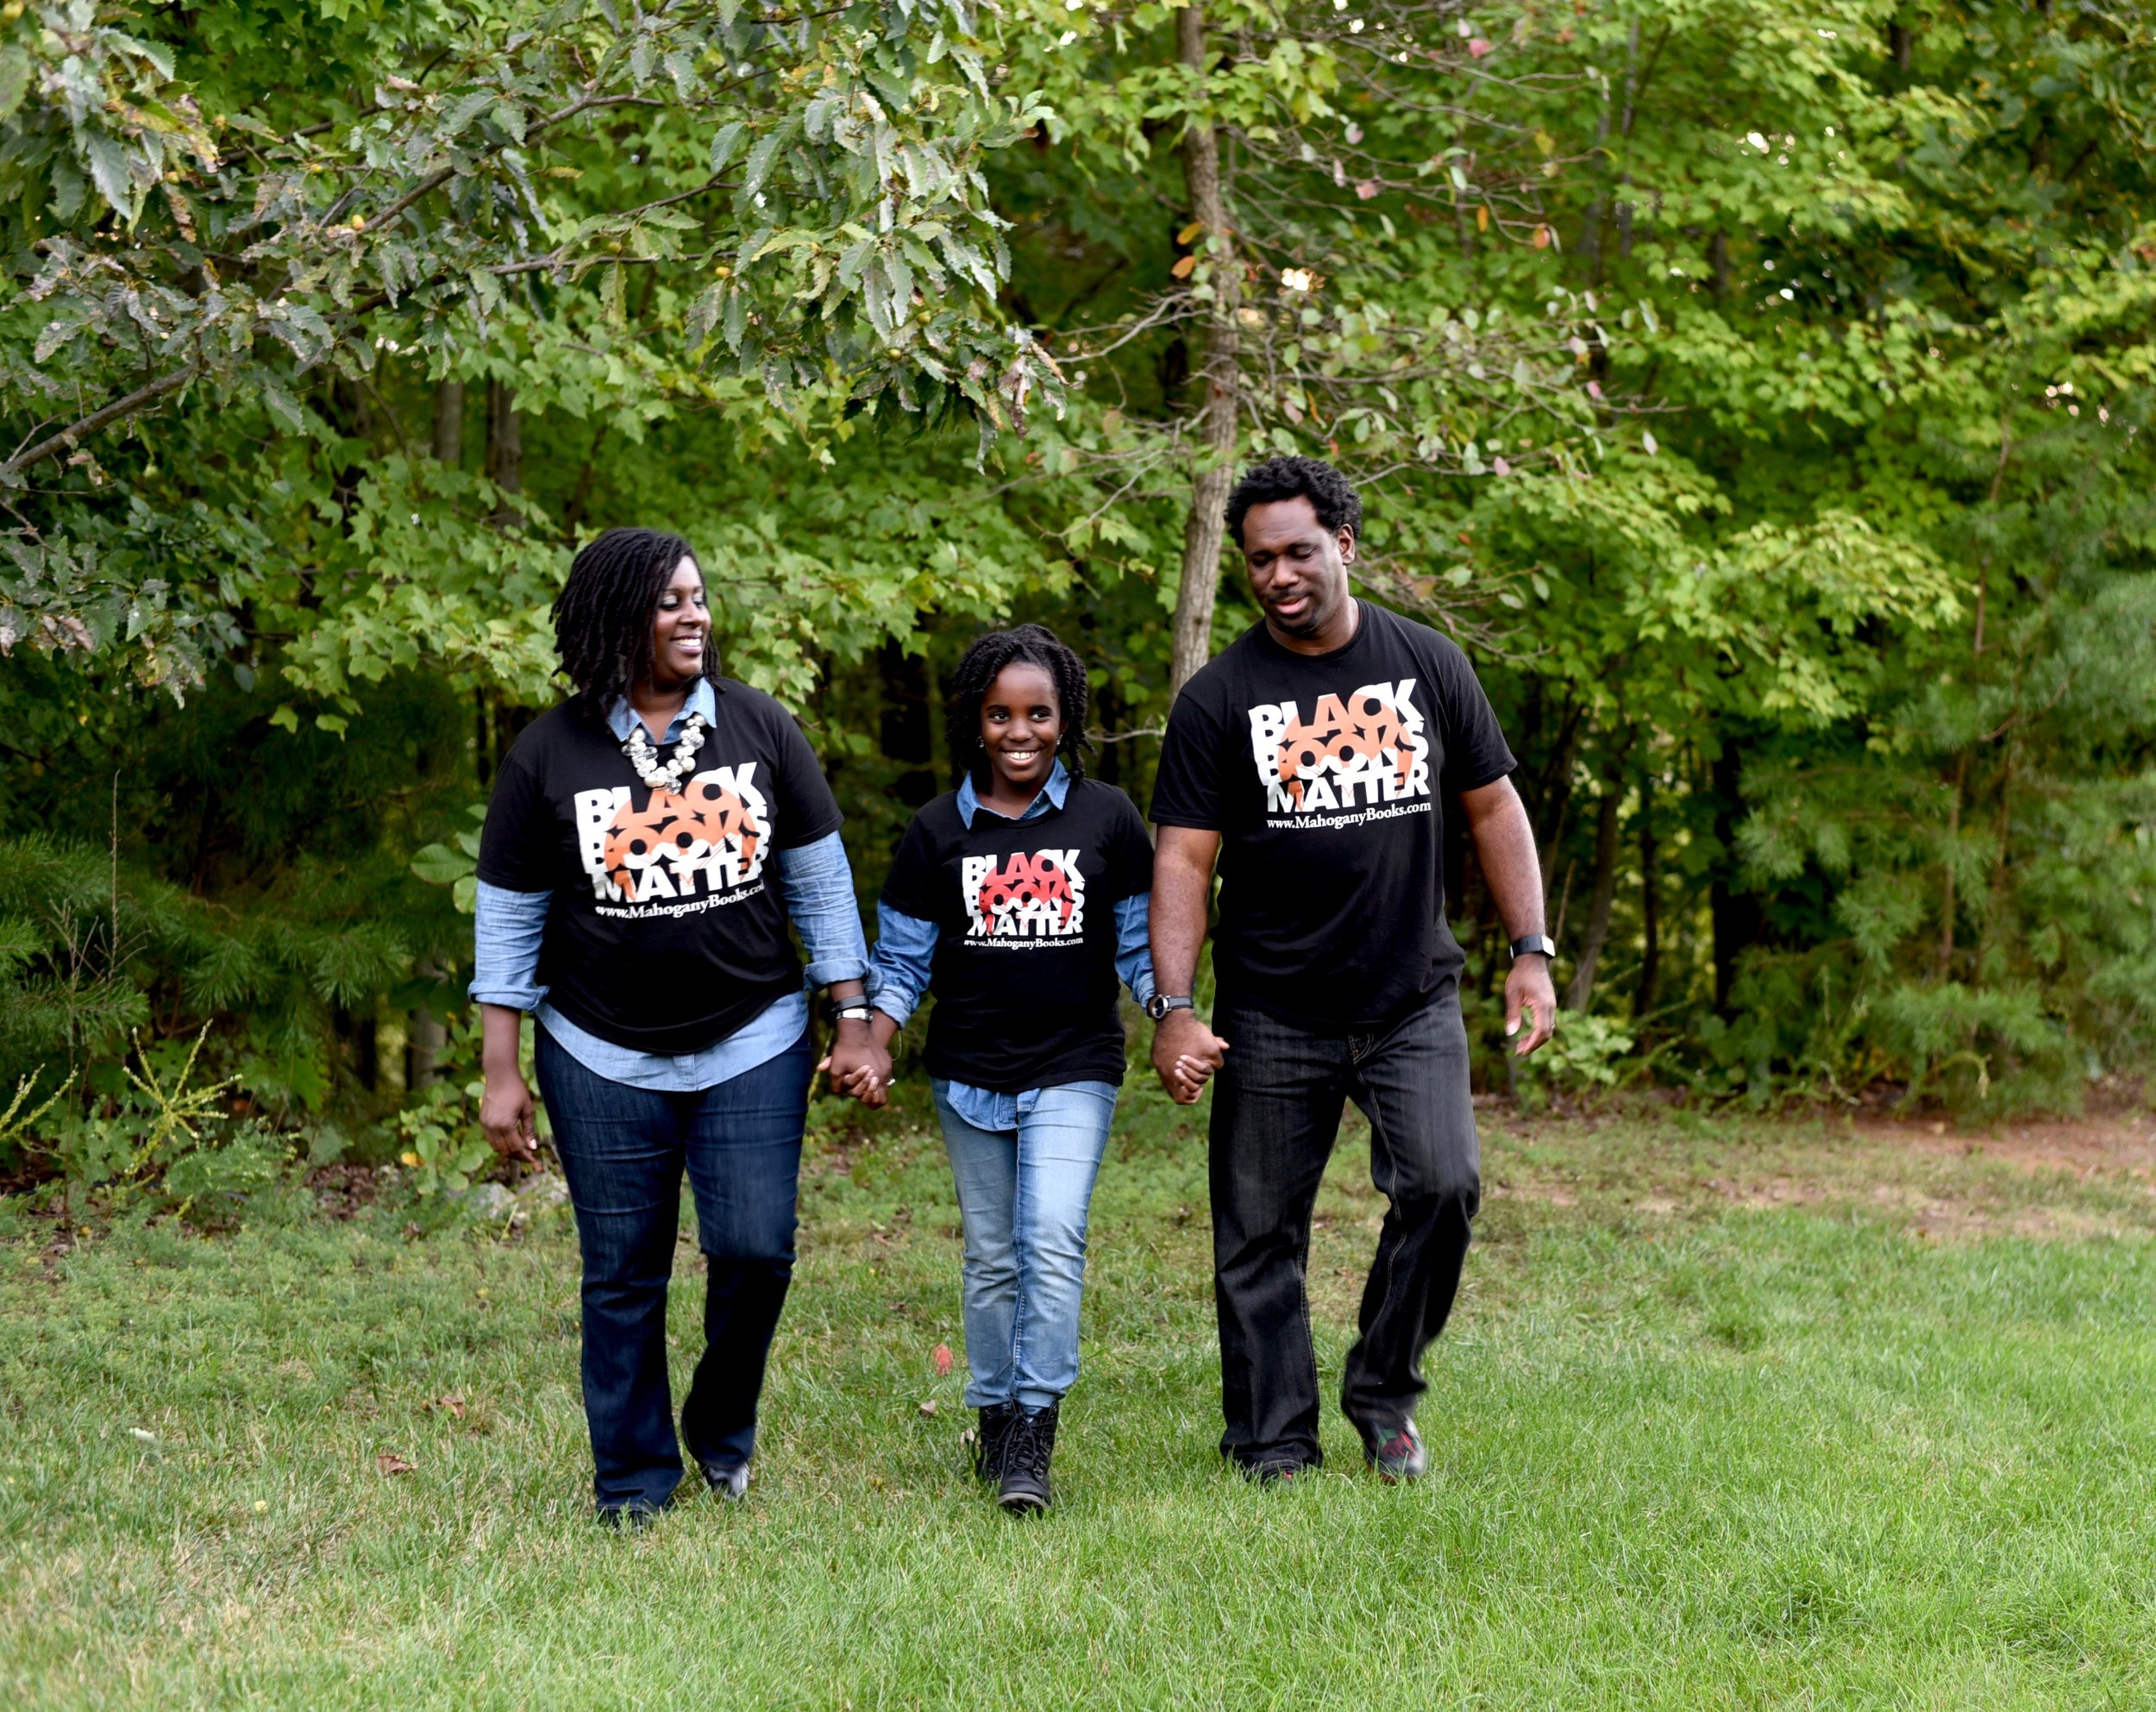 Pictured L to R: Ramunda, Mahogany, and Derrick Young